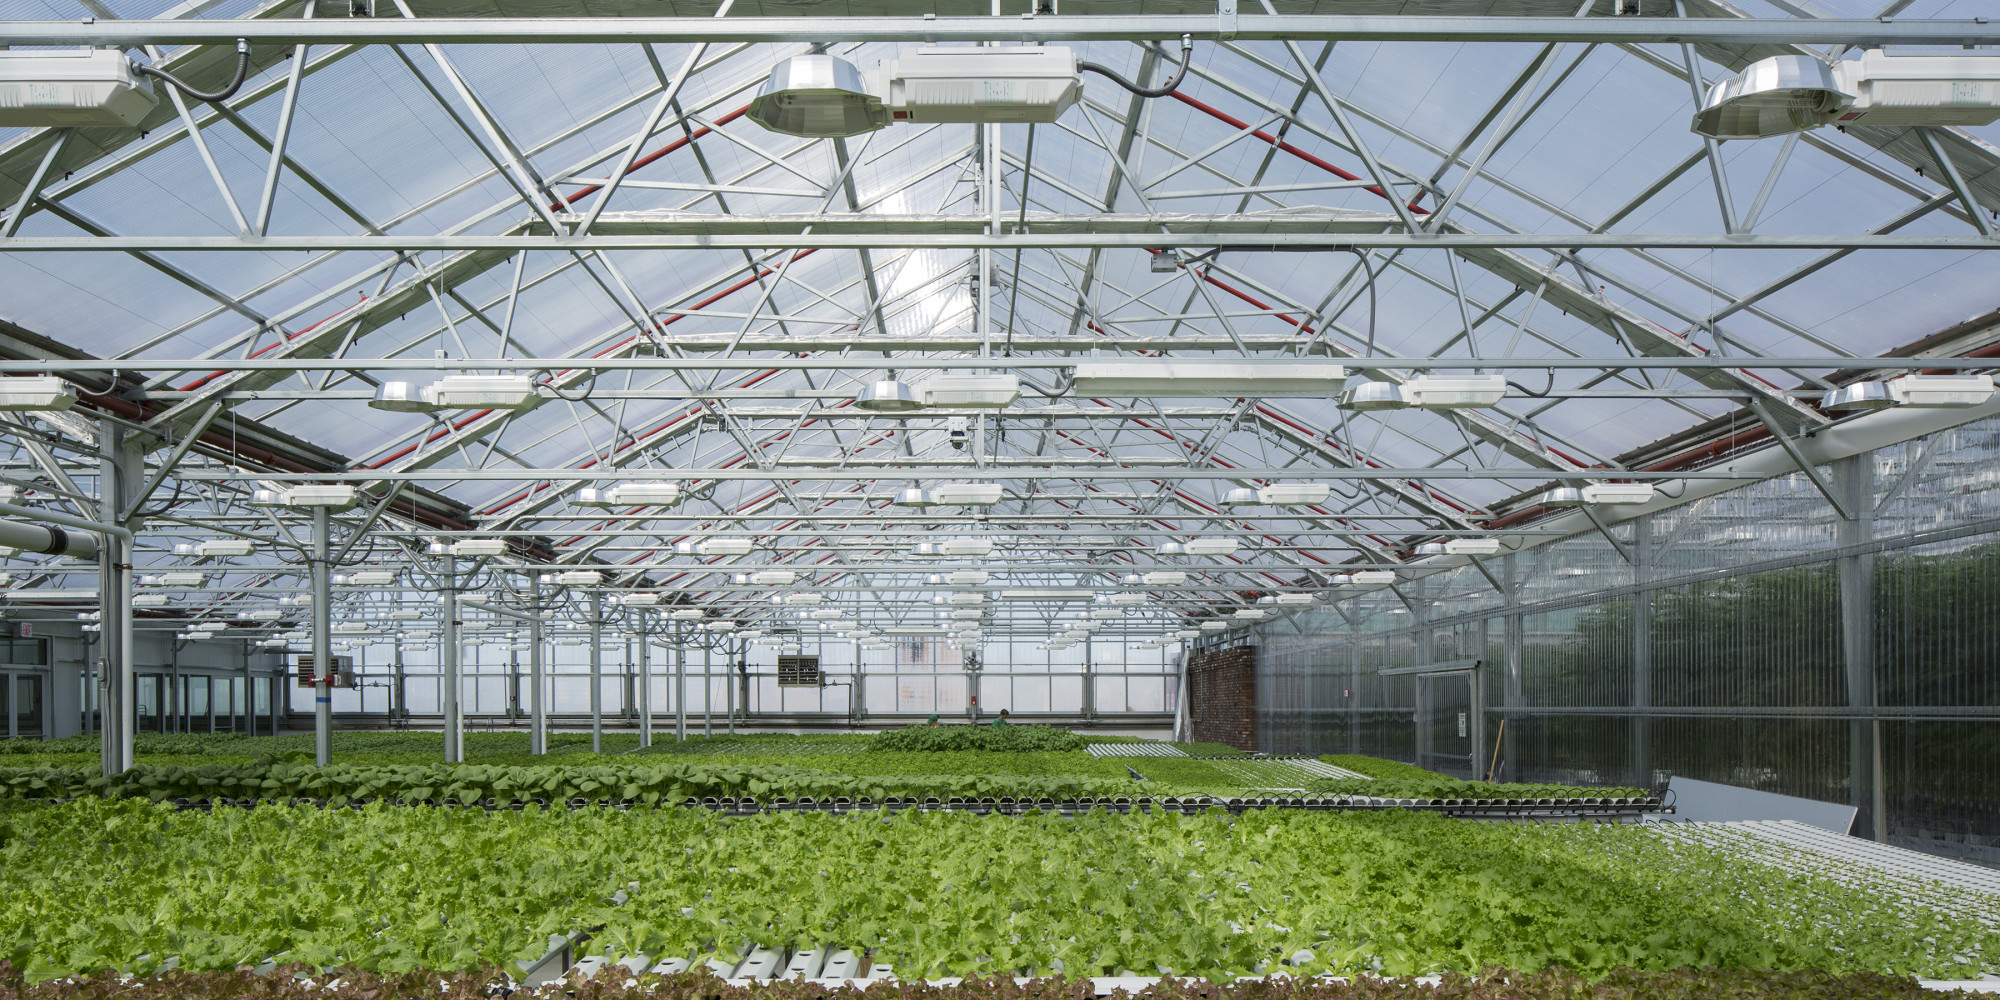 Gotham Greens Is Pushing The Scale Of Urban Agriculture